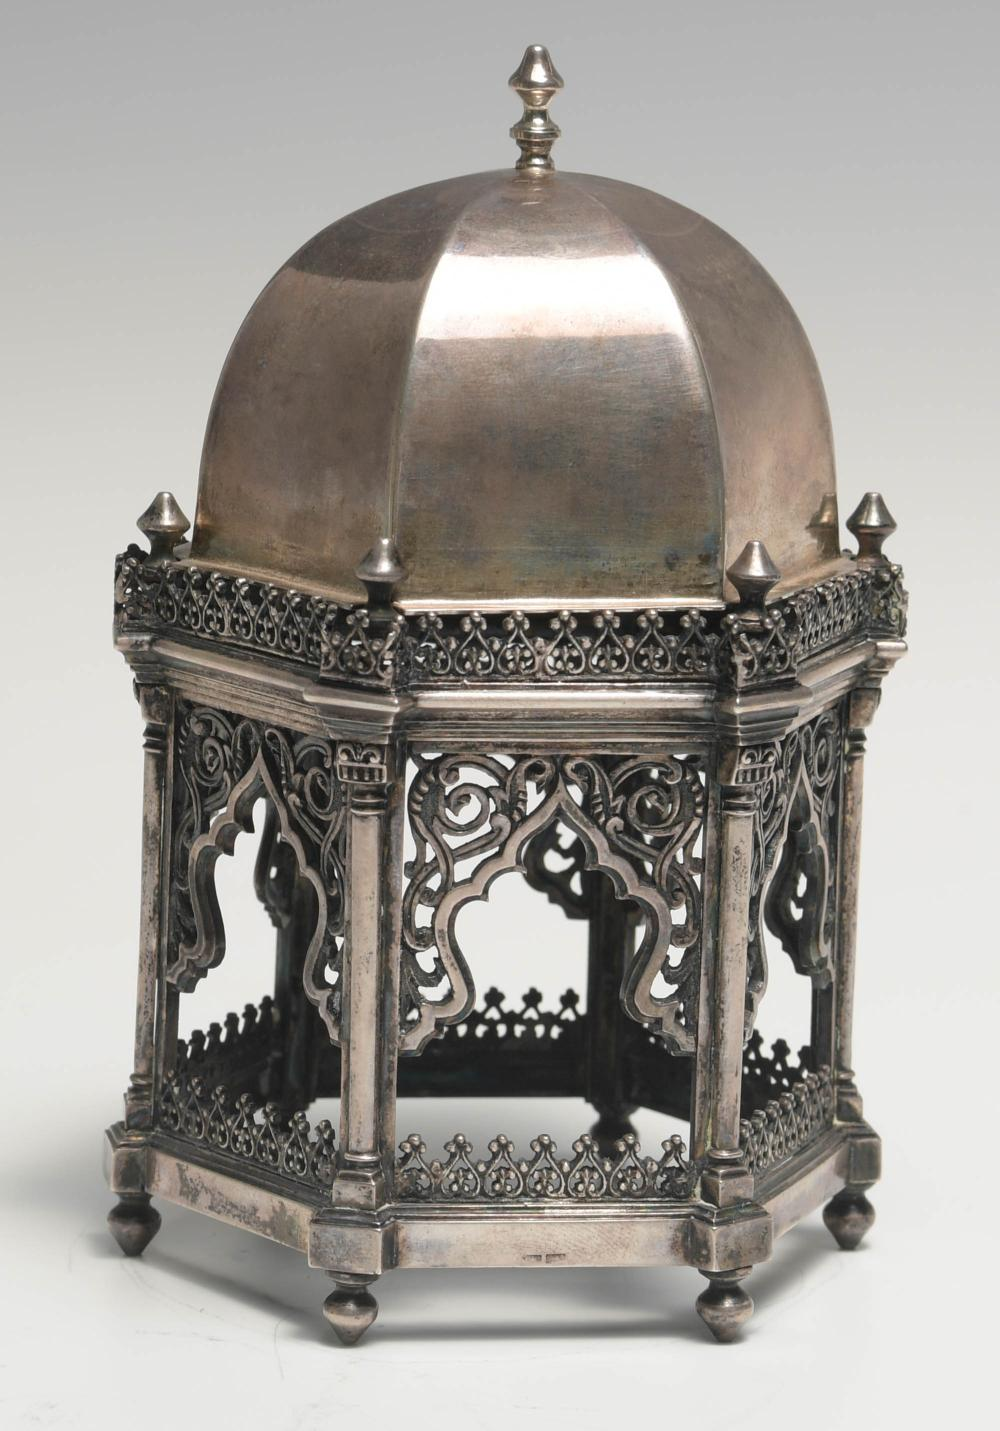 INDIAN SILVER PAGODA TEMPLE